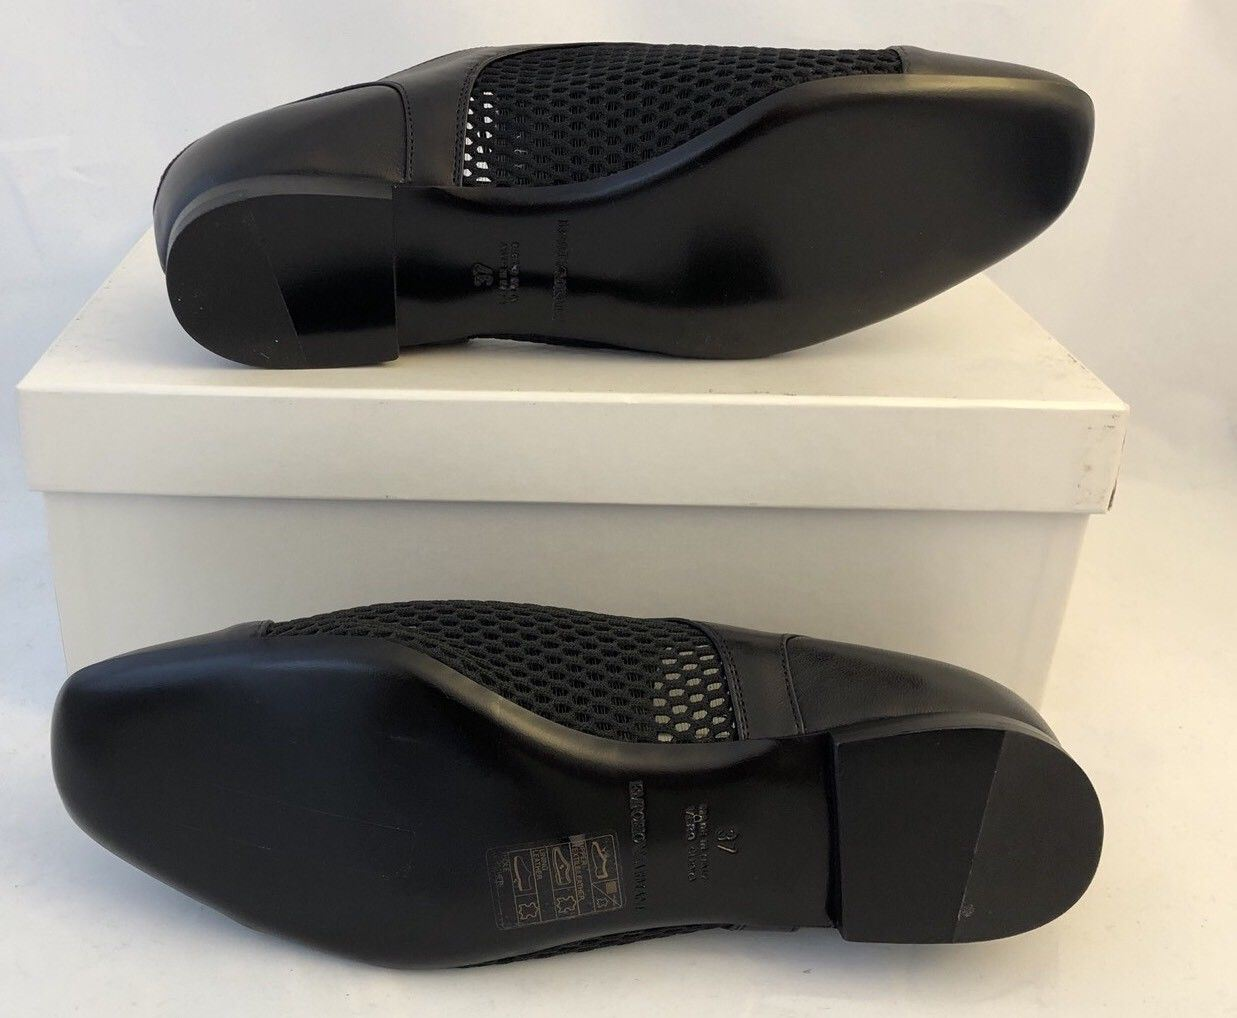 NIB $525 Emporio Armani Leather Women's Black Summer Flats 7 US X3C117 - BAYSUPERSTORE